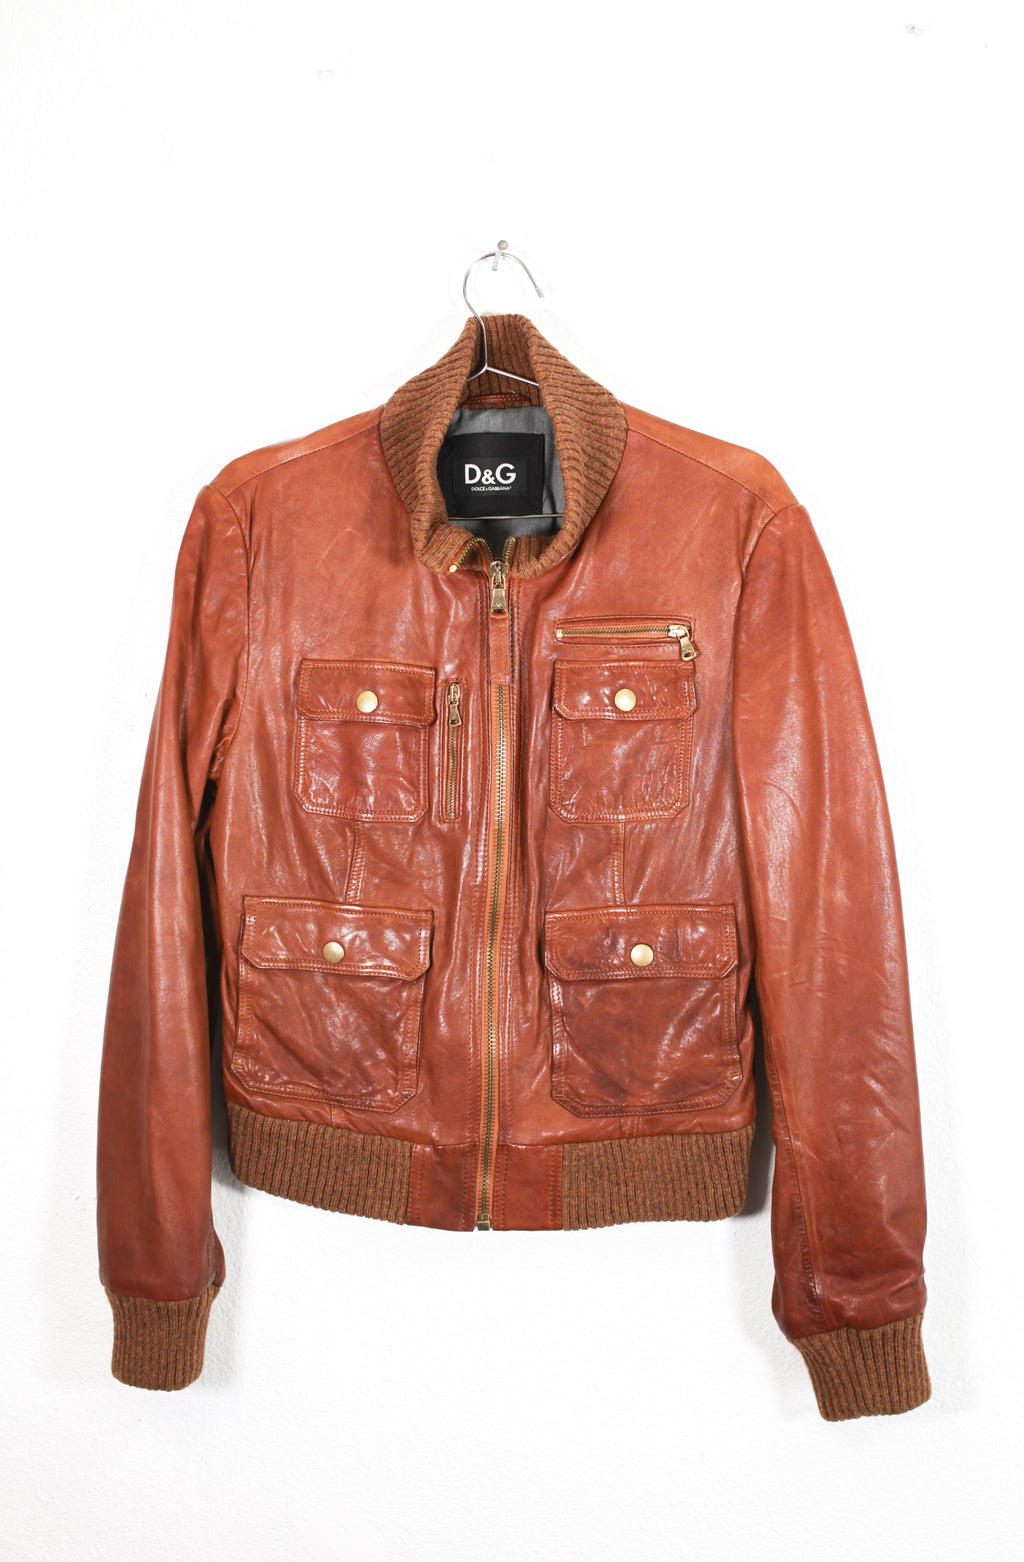 Dolce & Gabbana Brown Leather Jacket